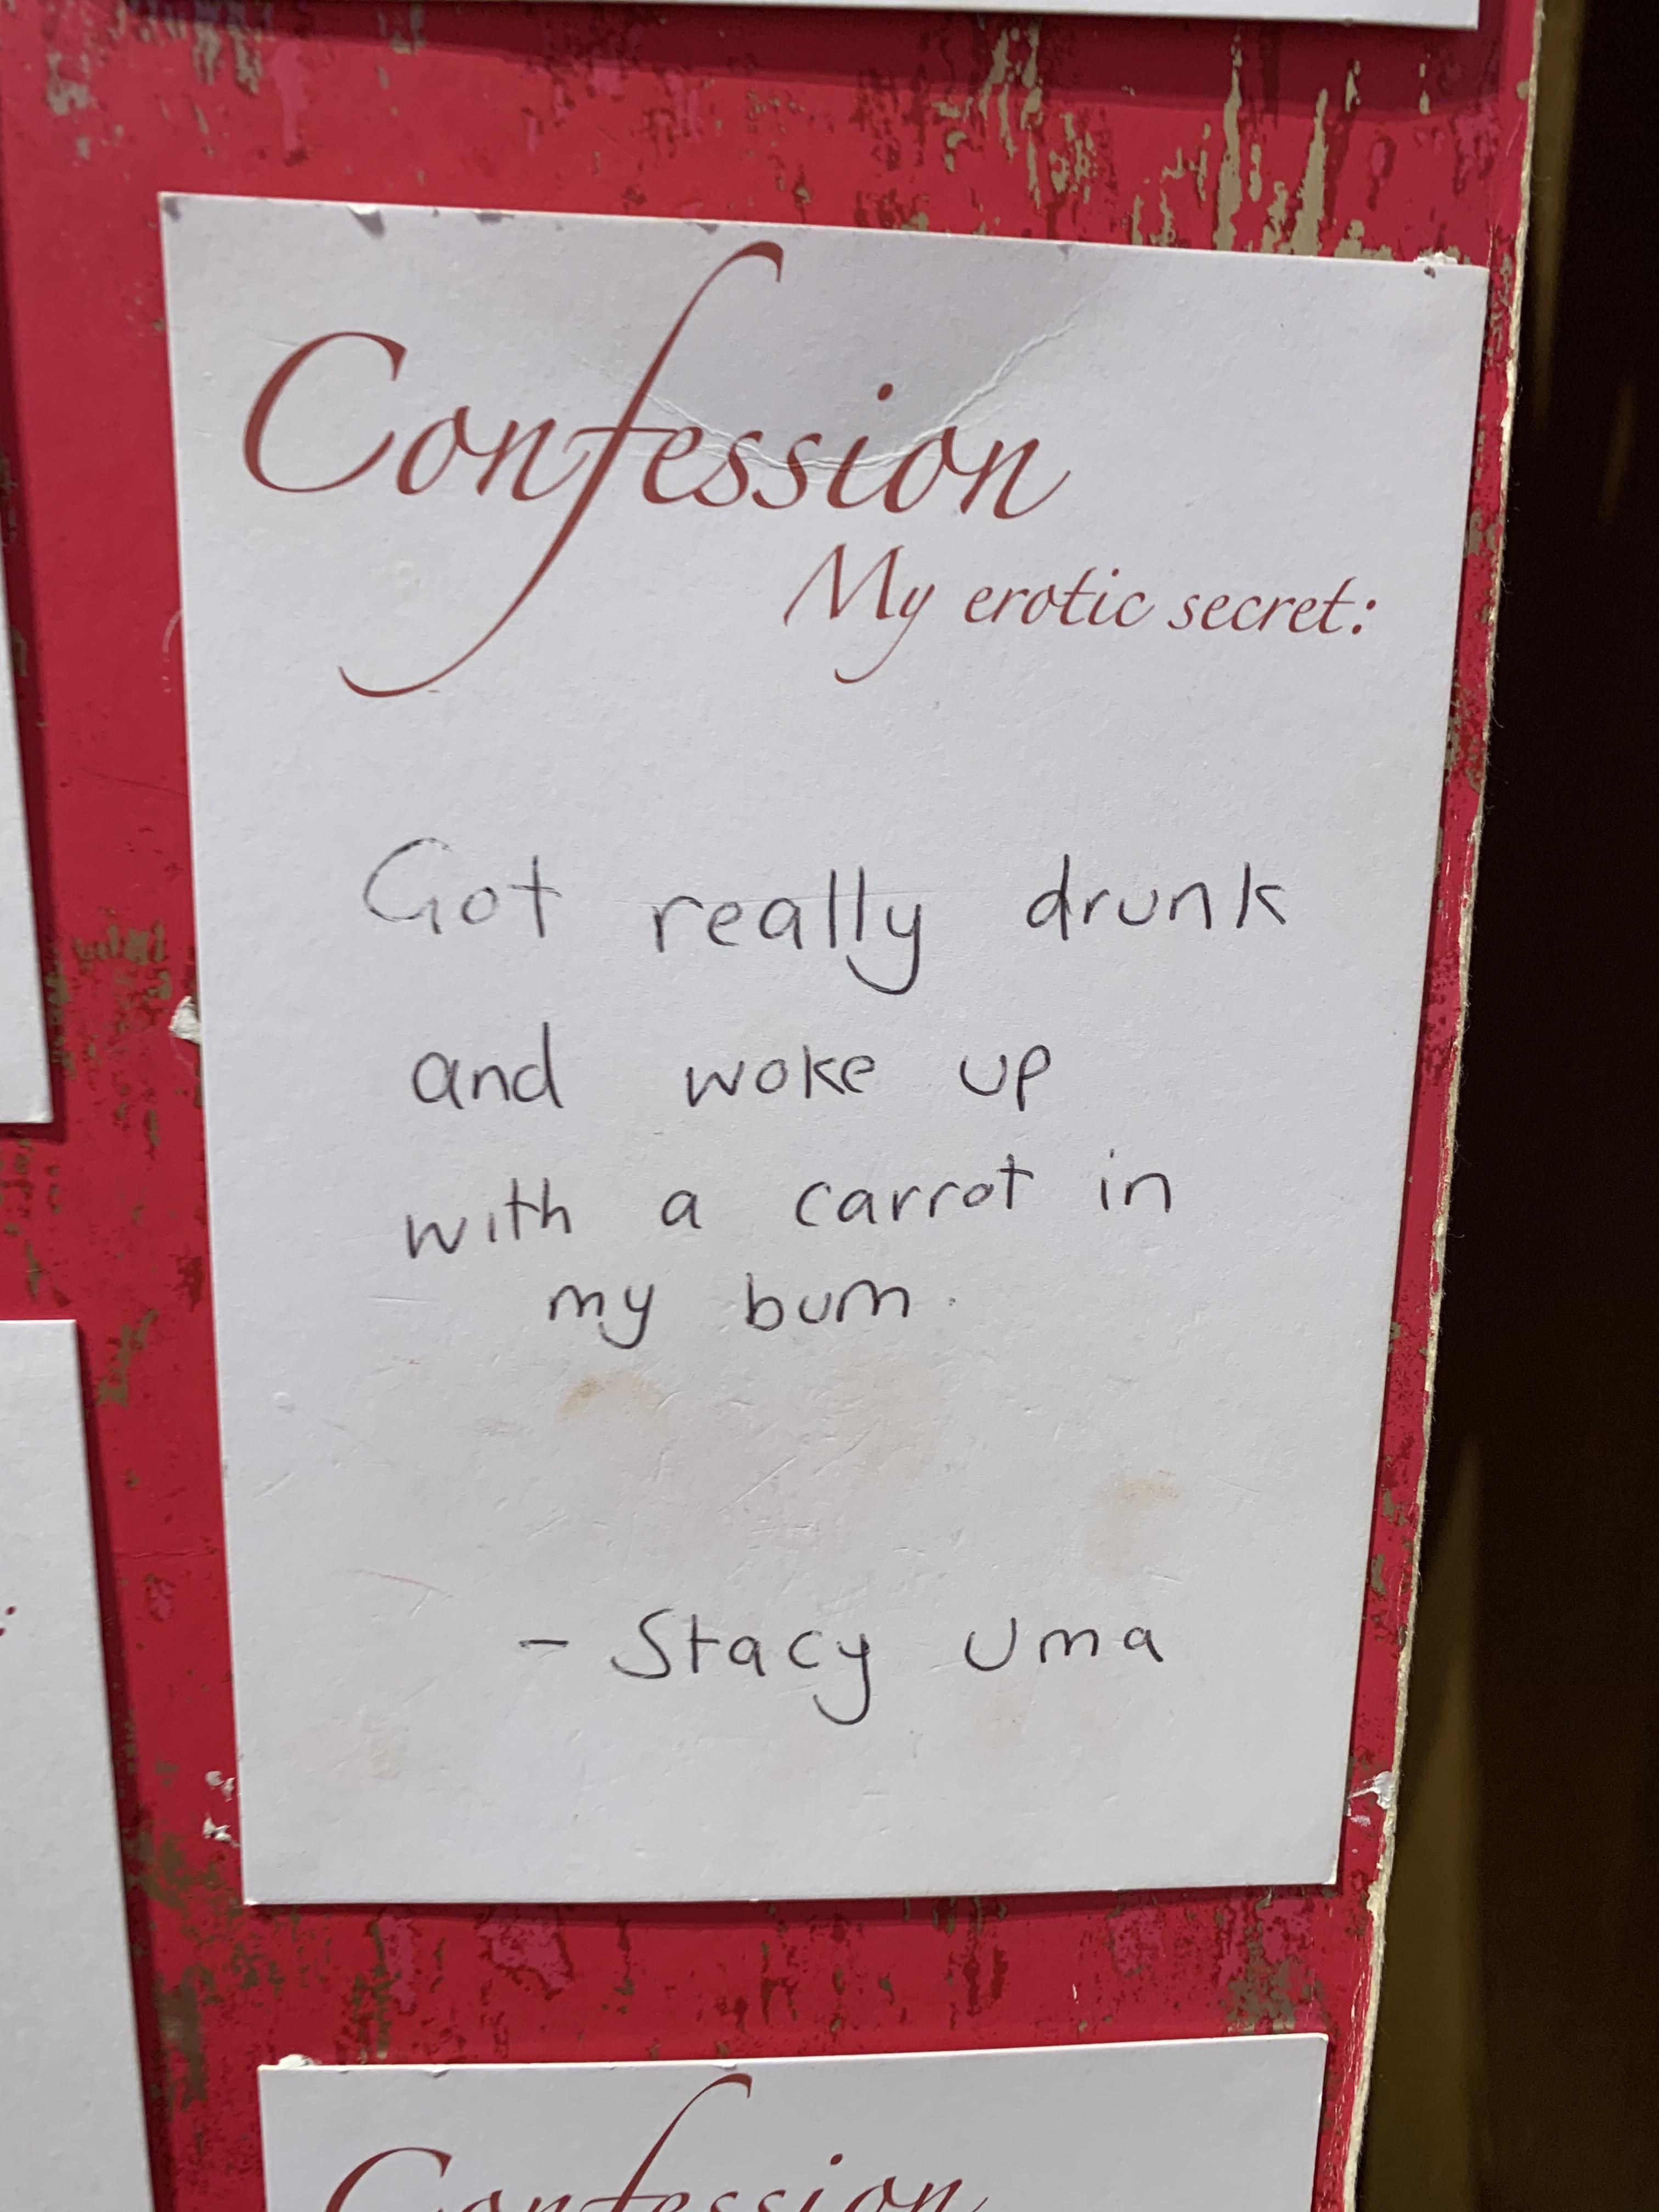 This Confession written by a visitor in the Museum of Prostitution in Amsterdam